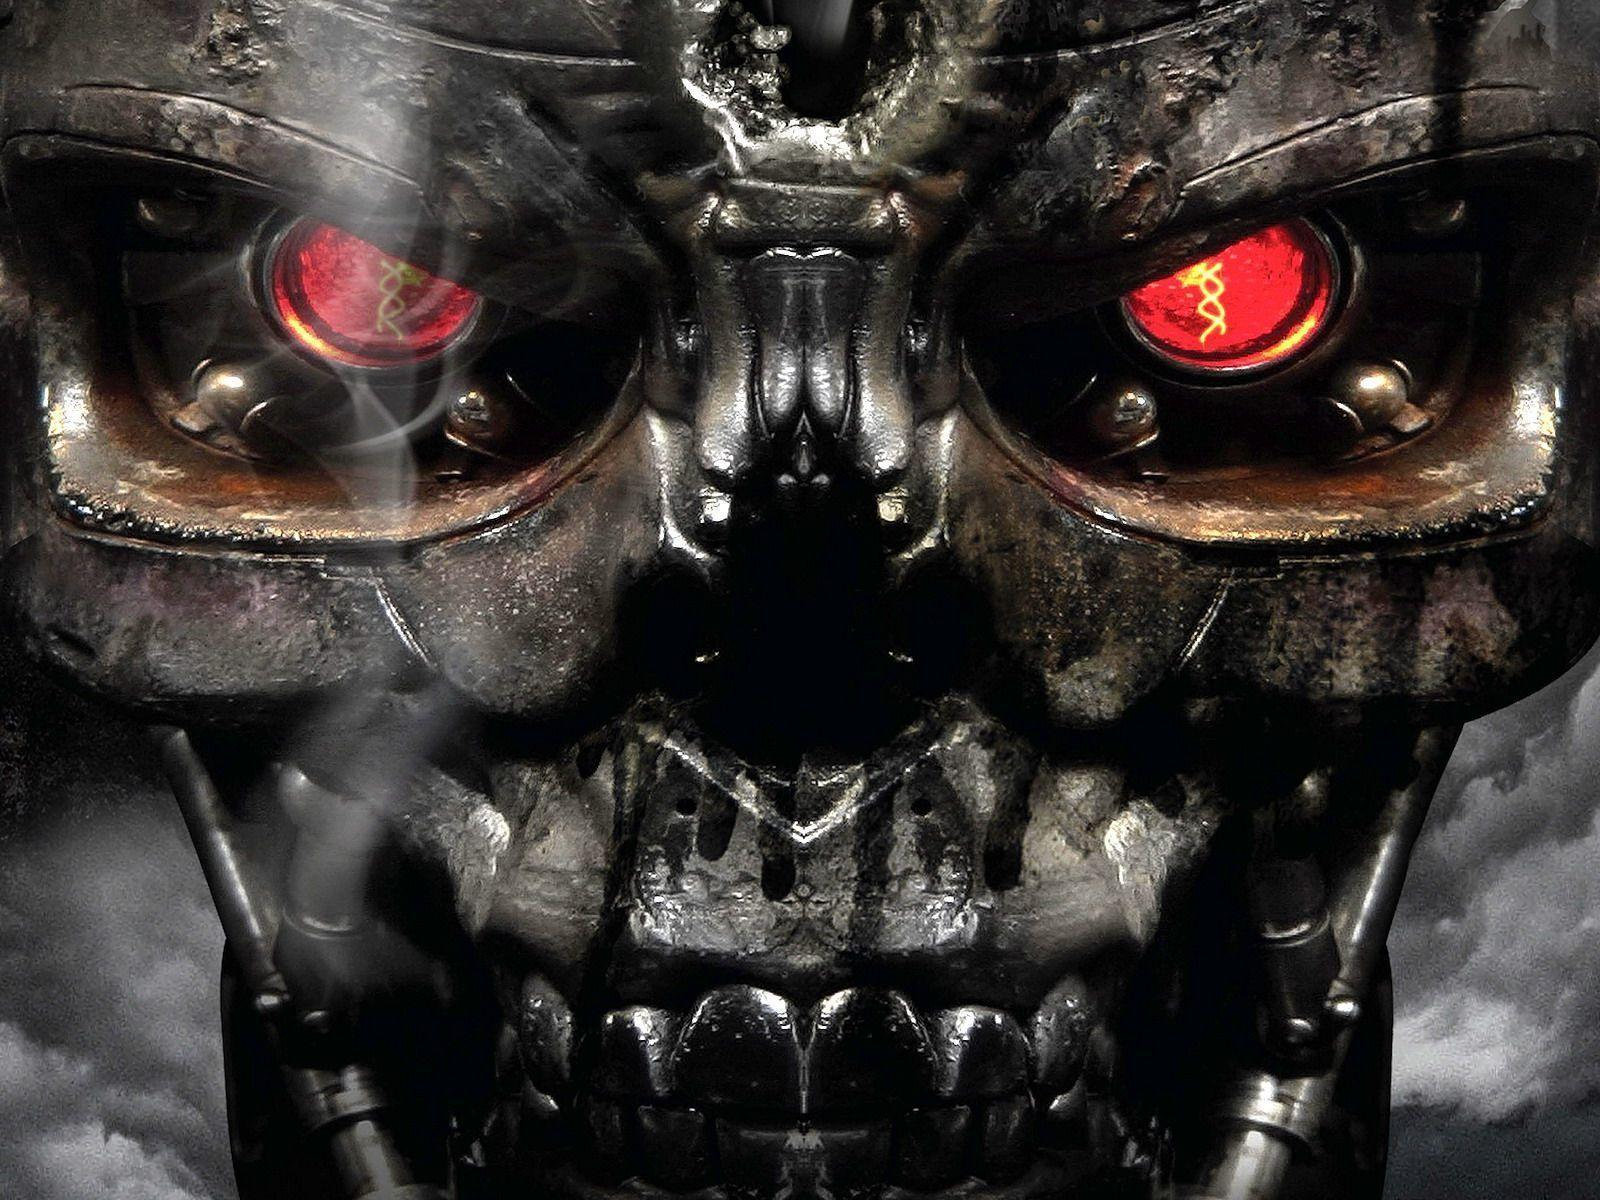 terminator salvation wallpaper hd - photo #11